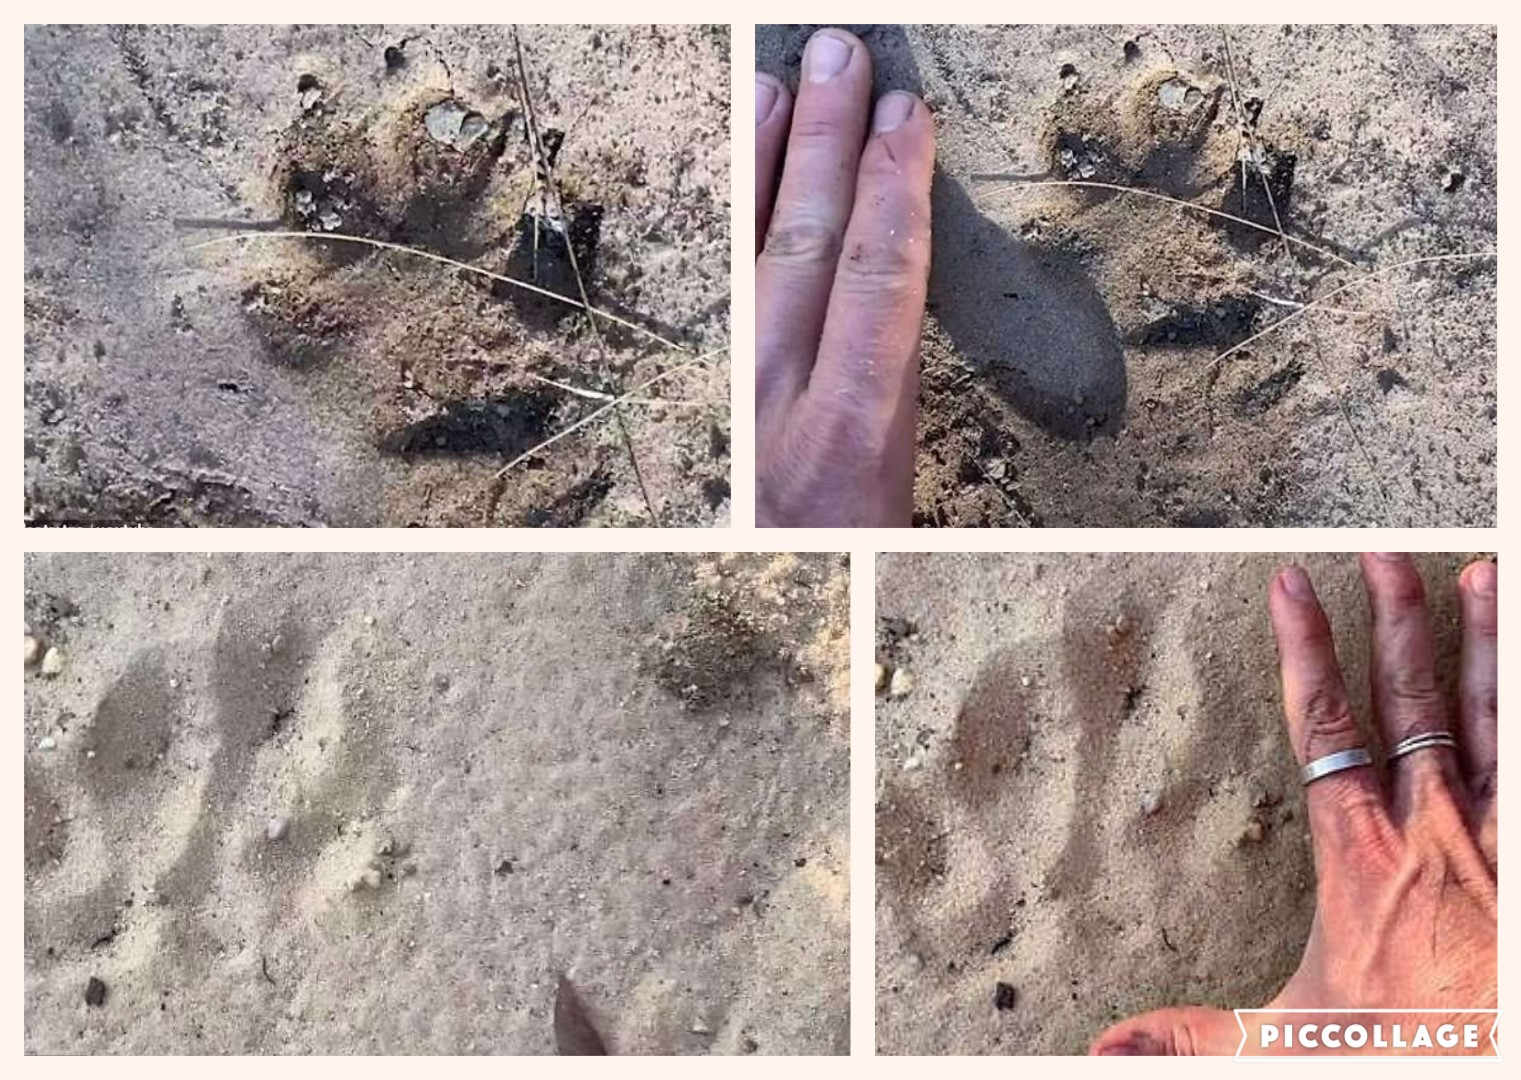 Pawprints of big cats in Blue Mountains NSW or some other animal?